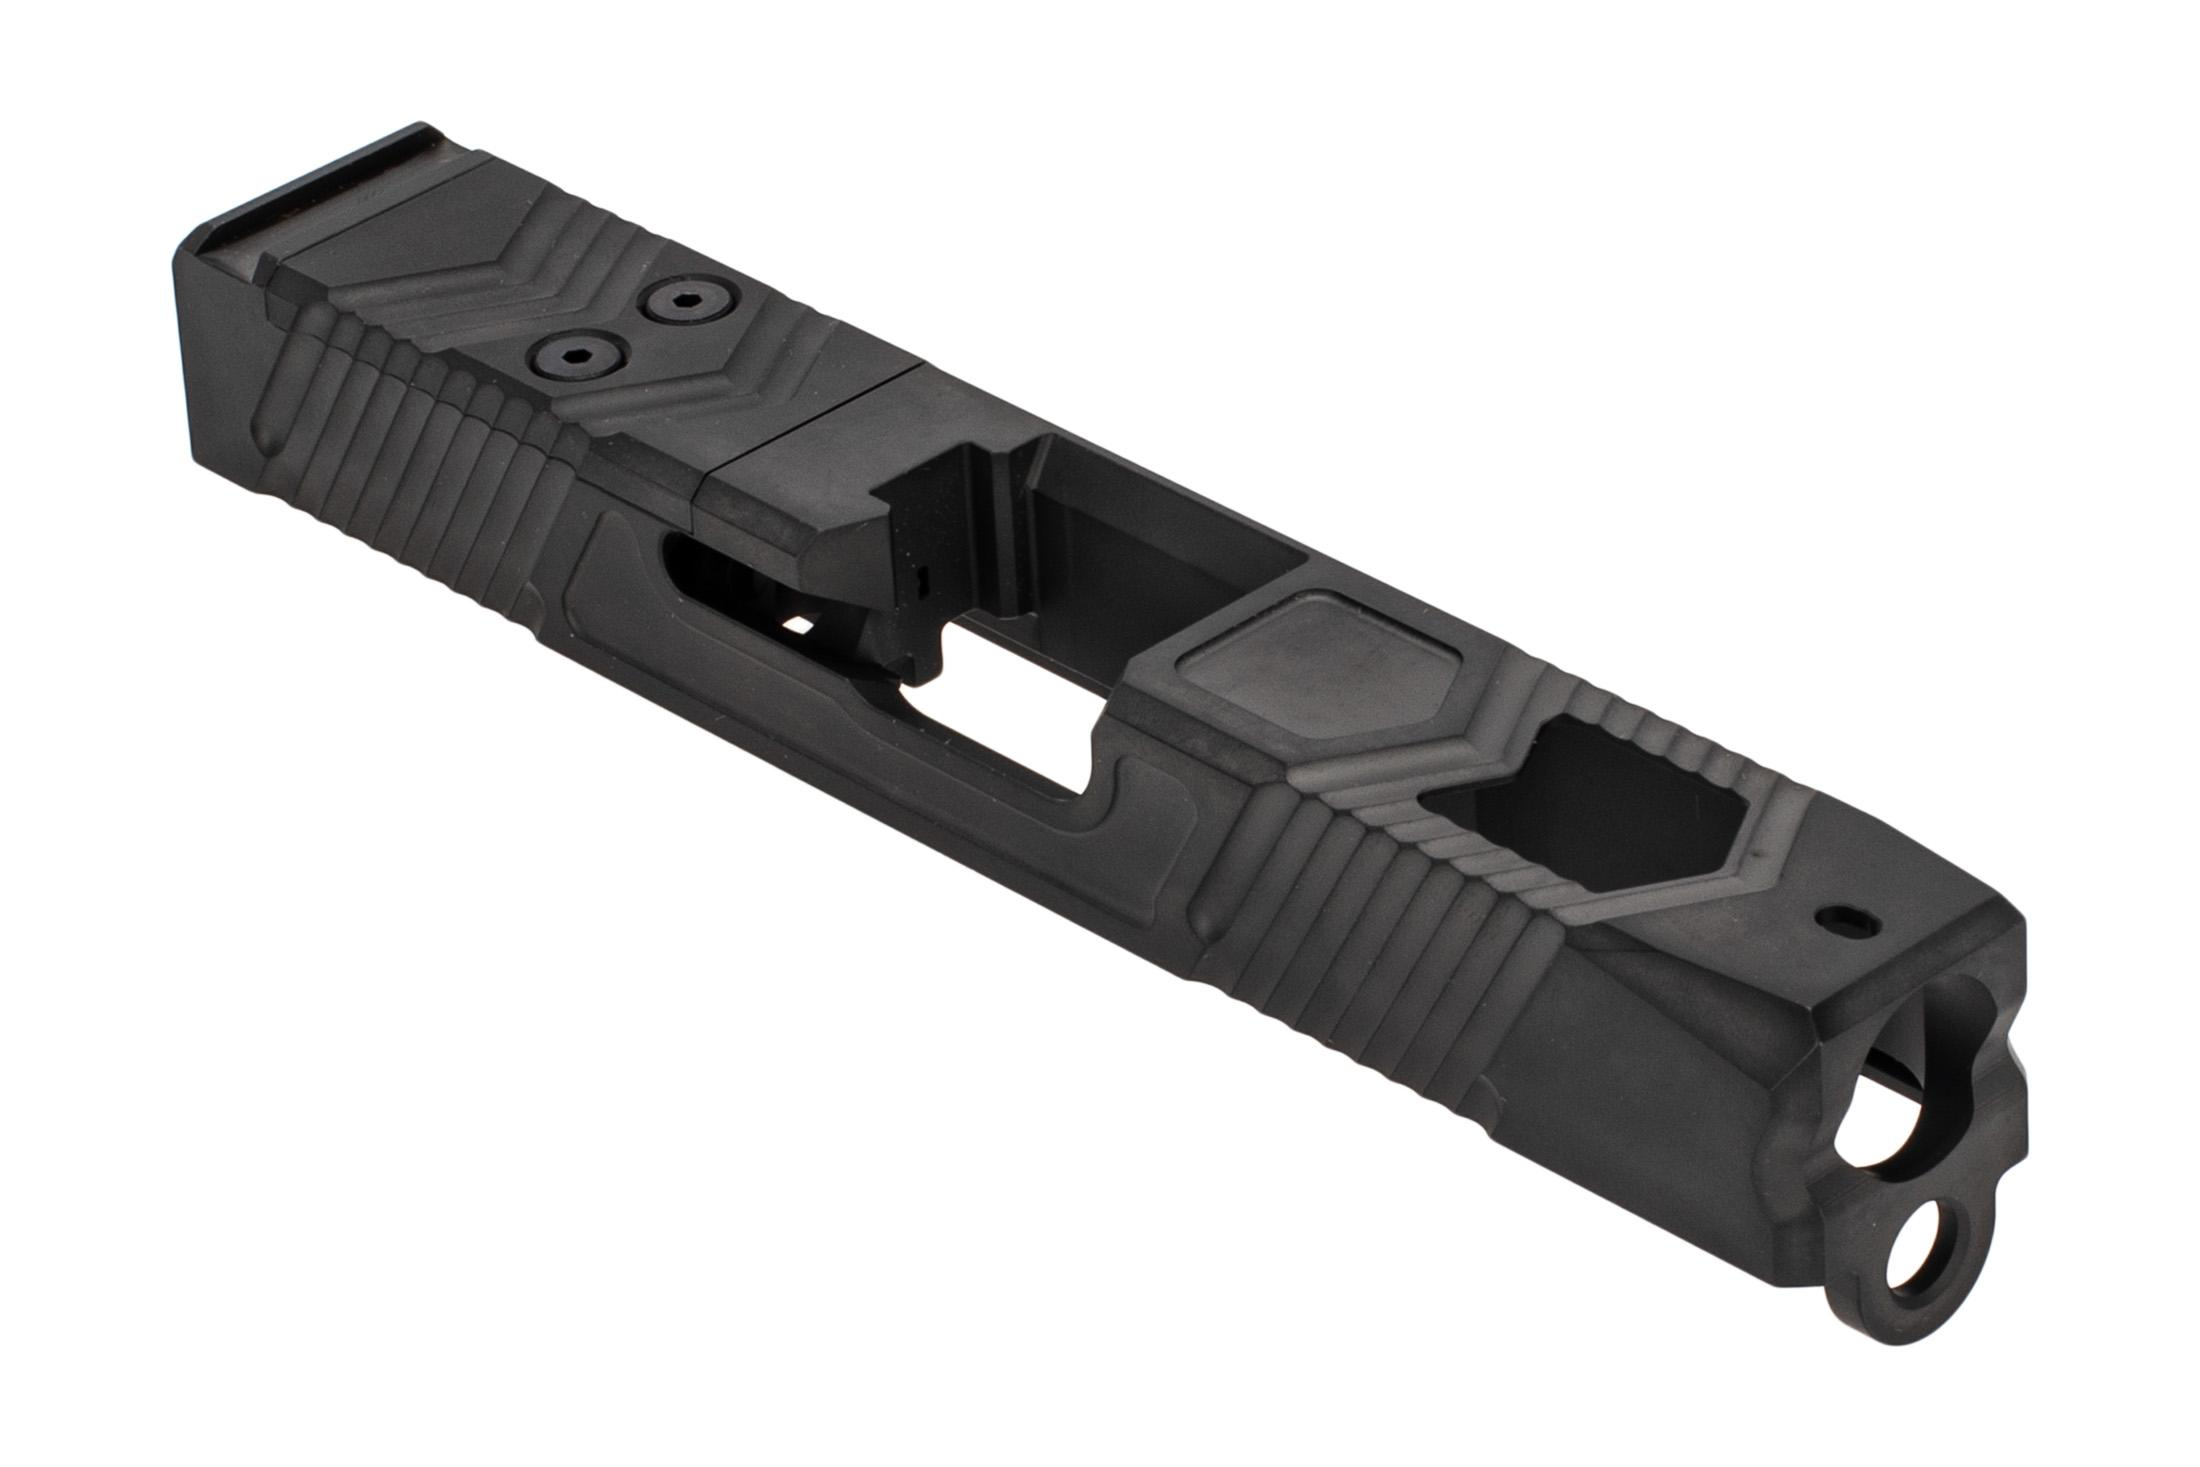 Voodoo Innovations Glock 19 VS19 stripped slide is milled for red dot sights